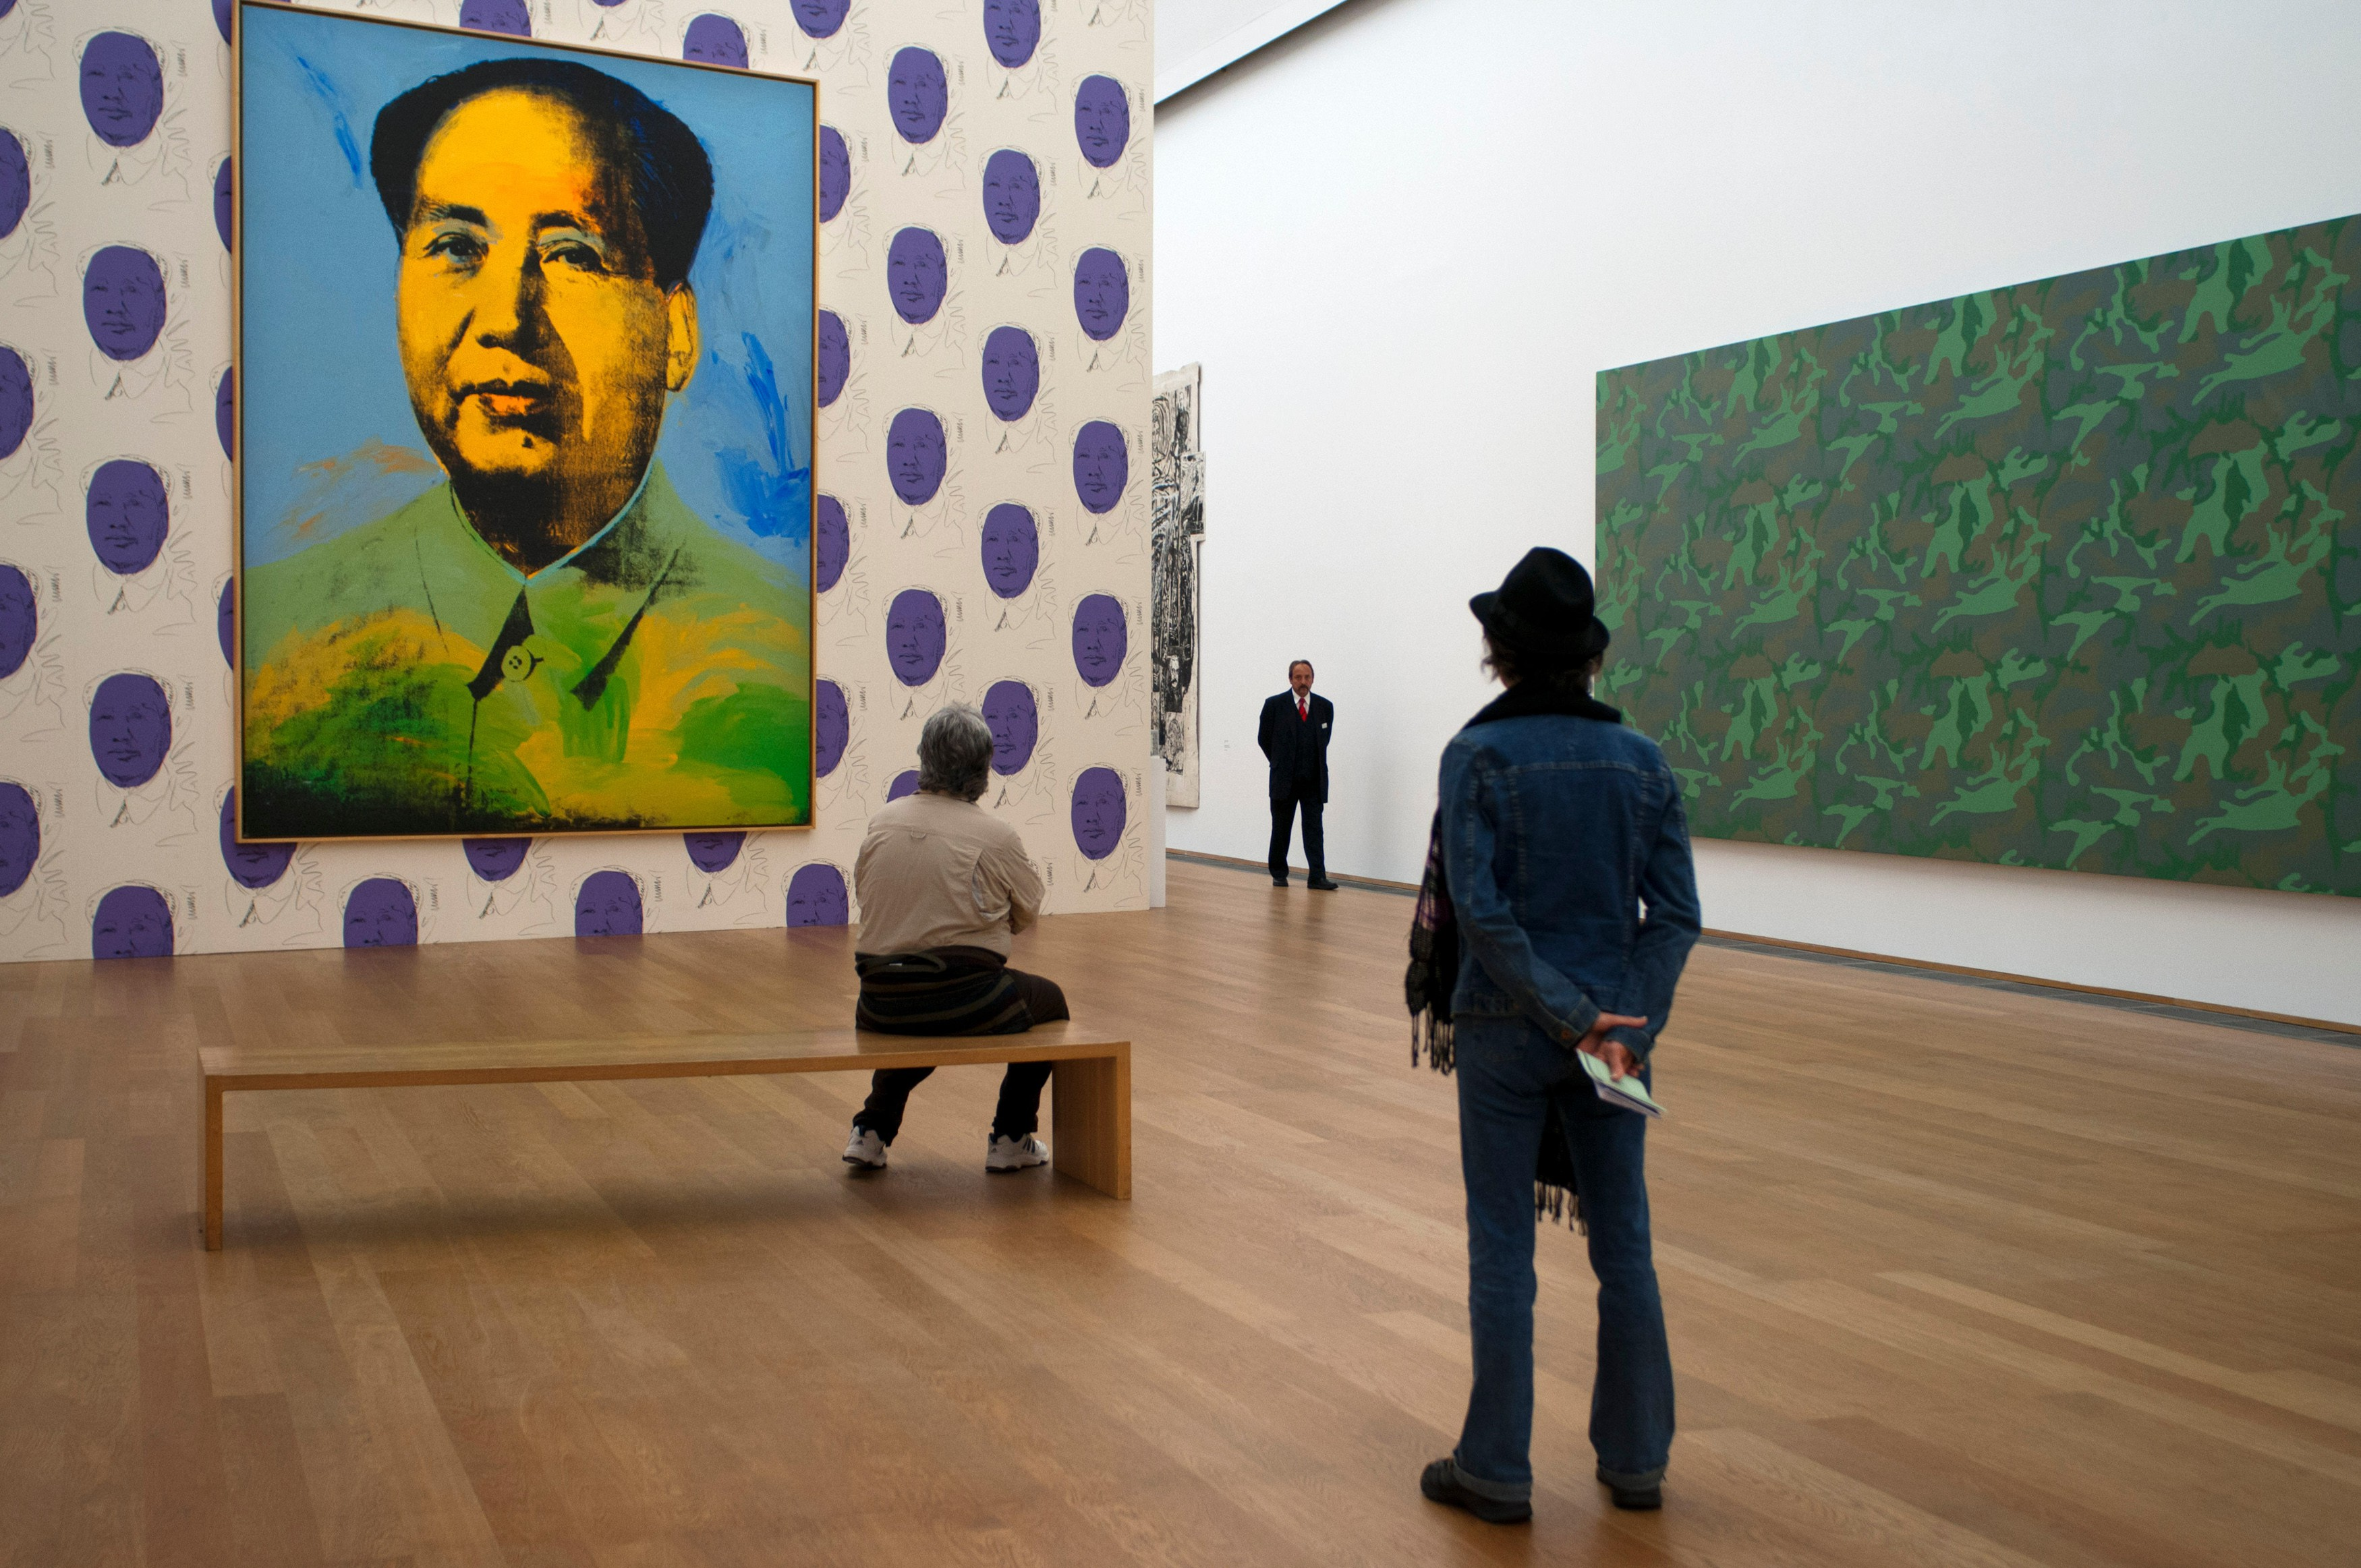 The Best Museums To Visit in Berlin